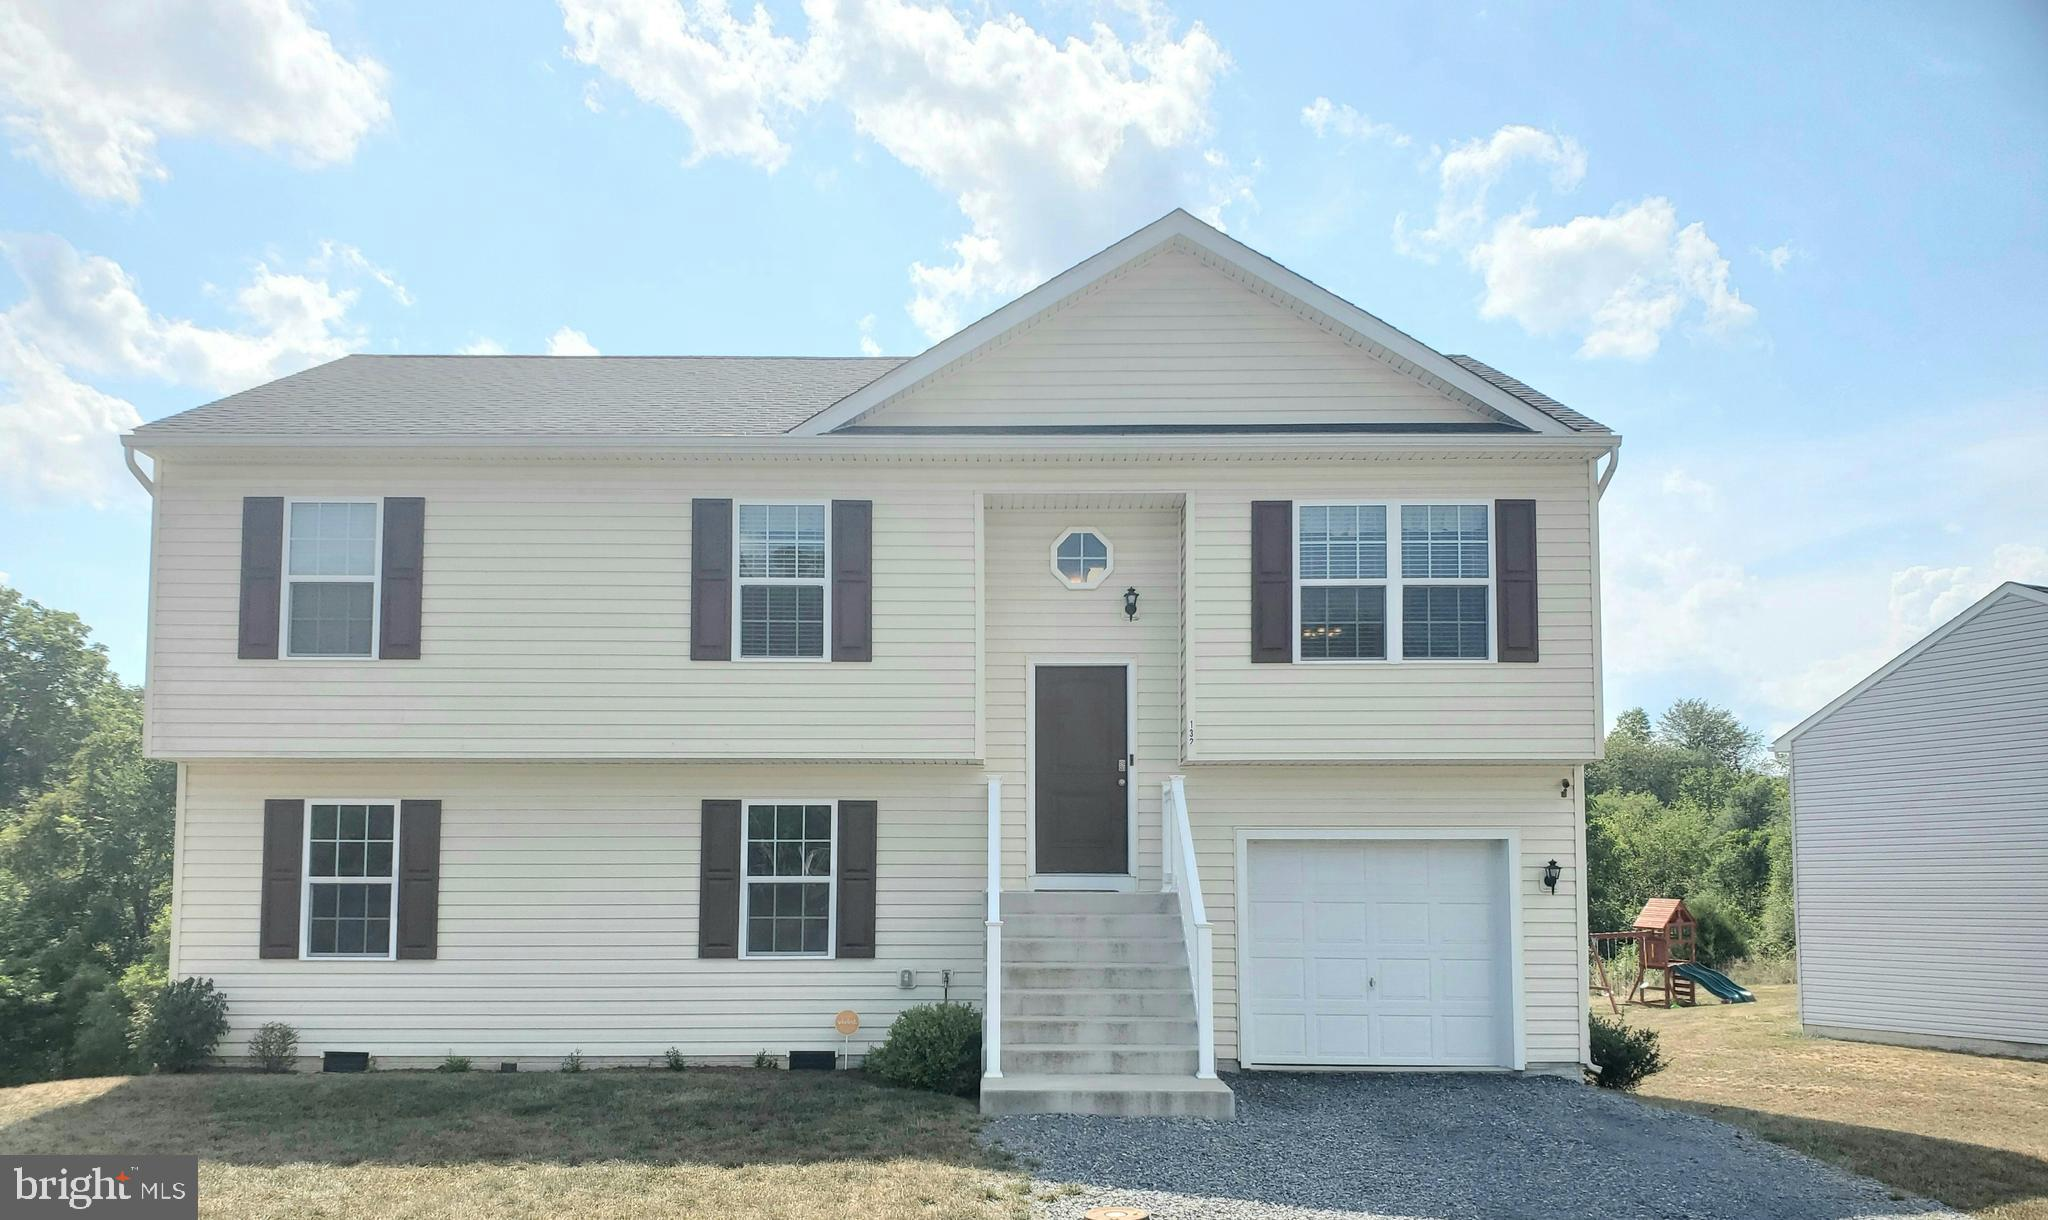 Less than 3 years old, this shows beautifully.  Offering 3 bedrooms, 2 full baths, living room with